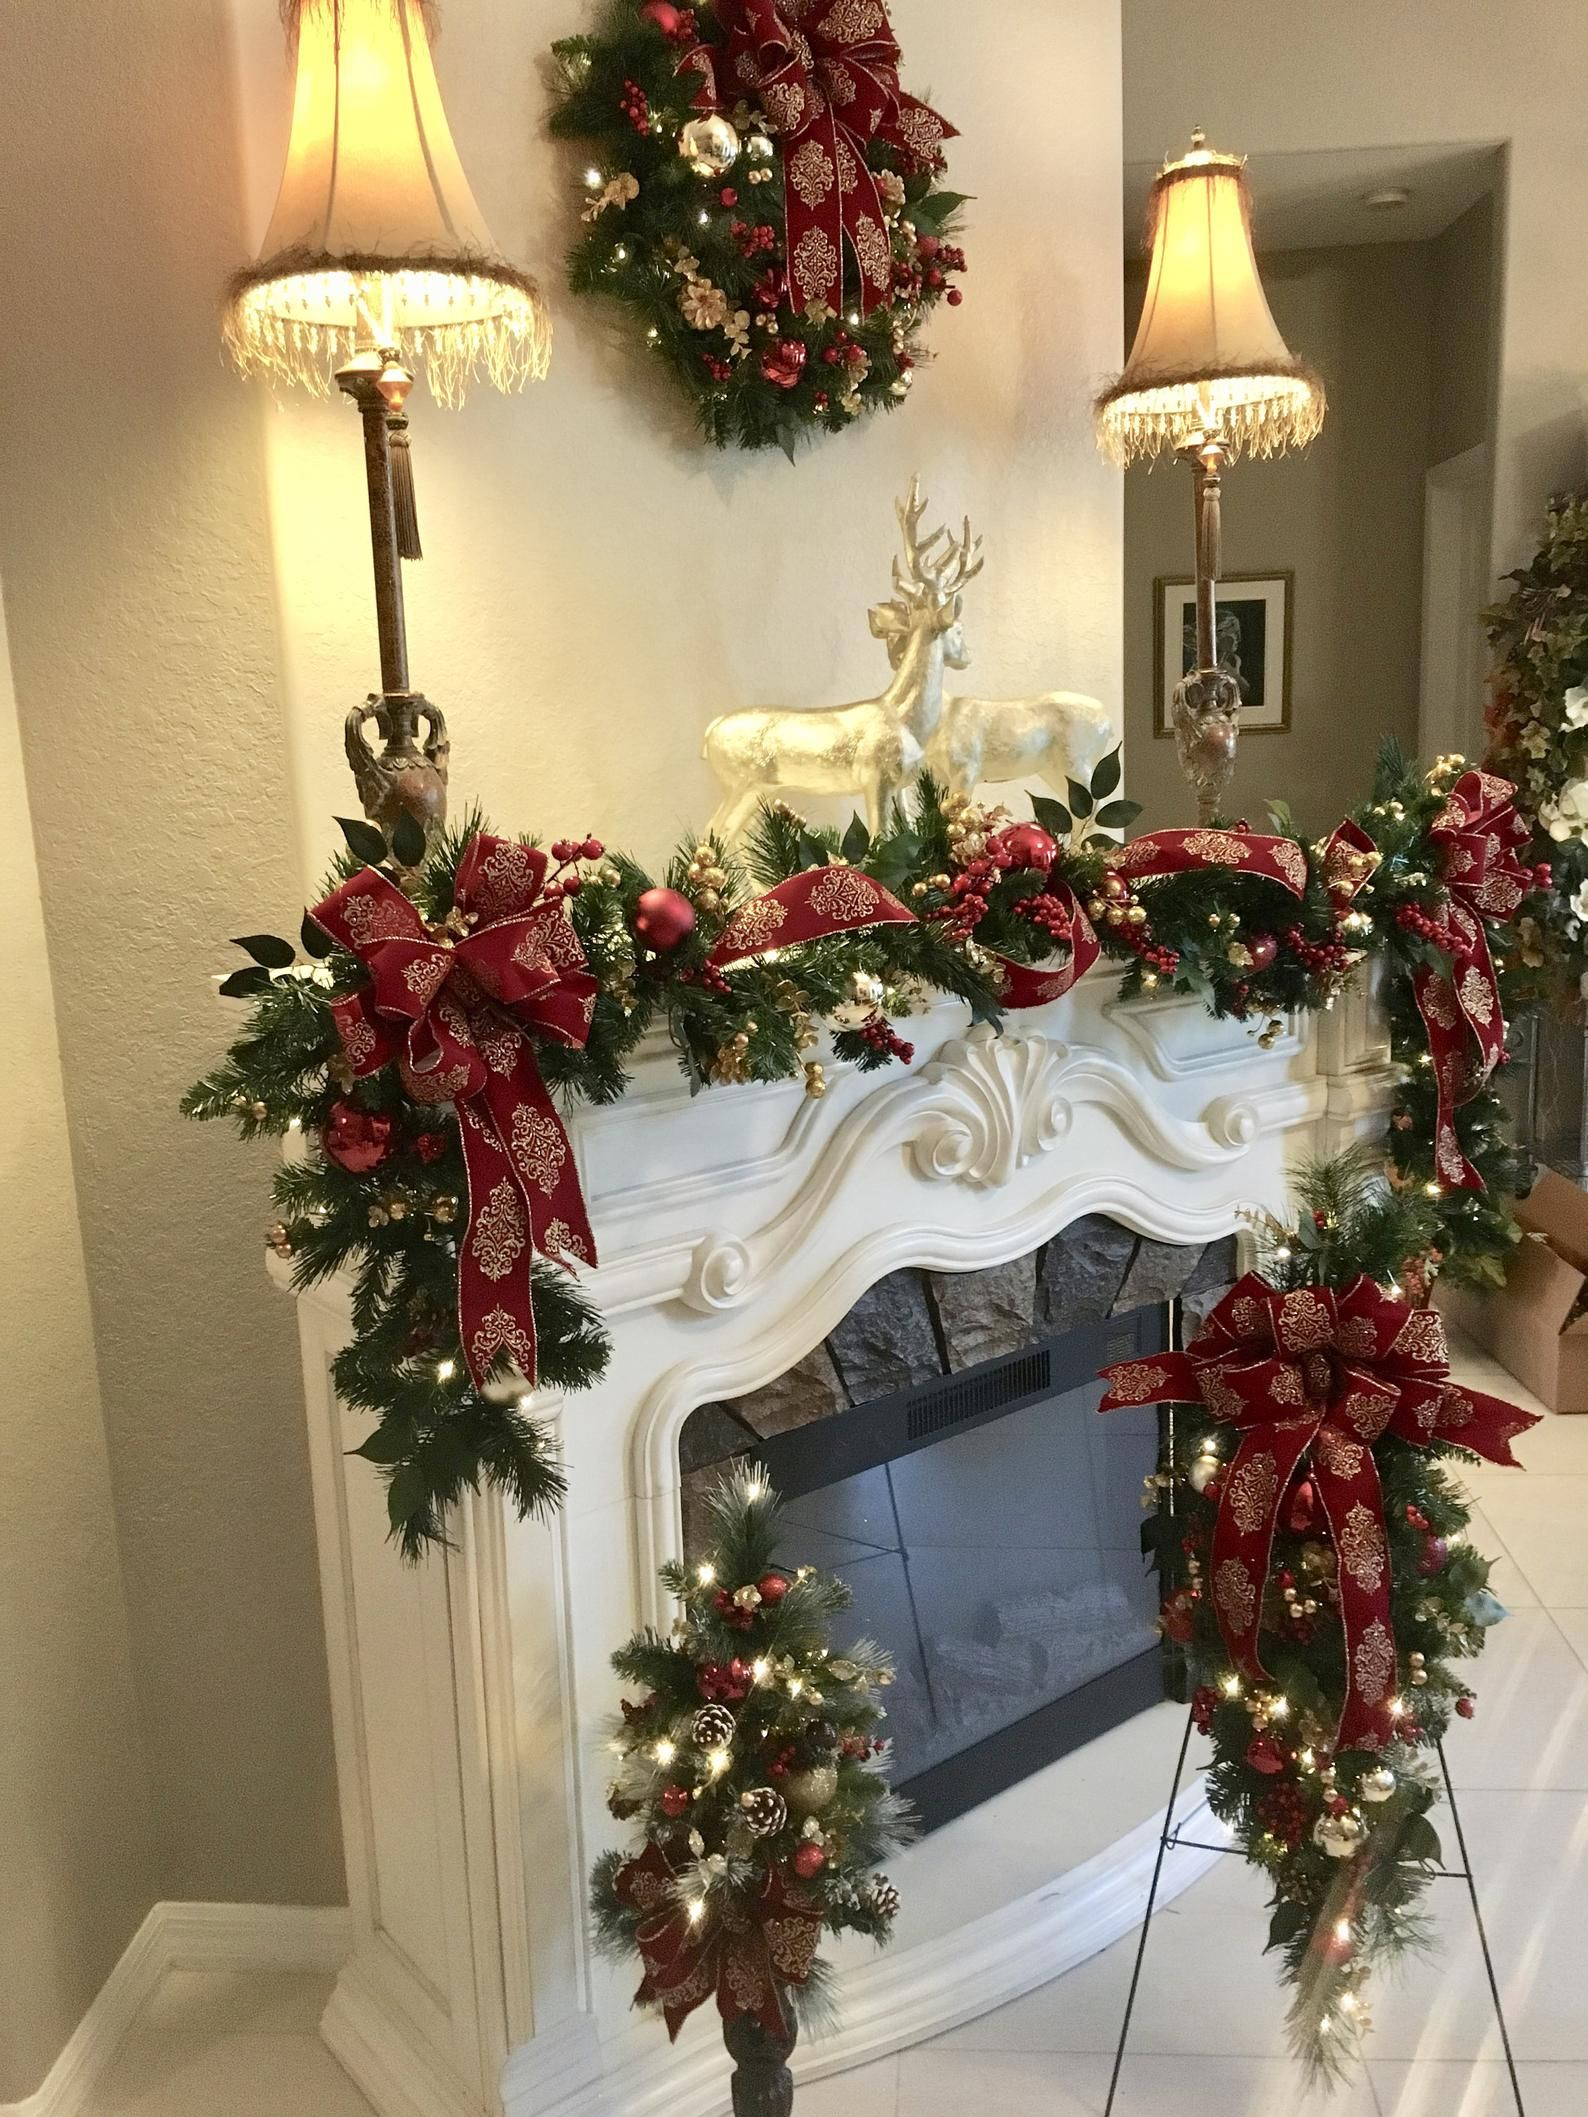 Crest Open On Christmas 2020 4 PC Set Christmas Wreath Garland Burgundy Crest Ribbons   Etsy in